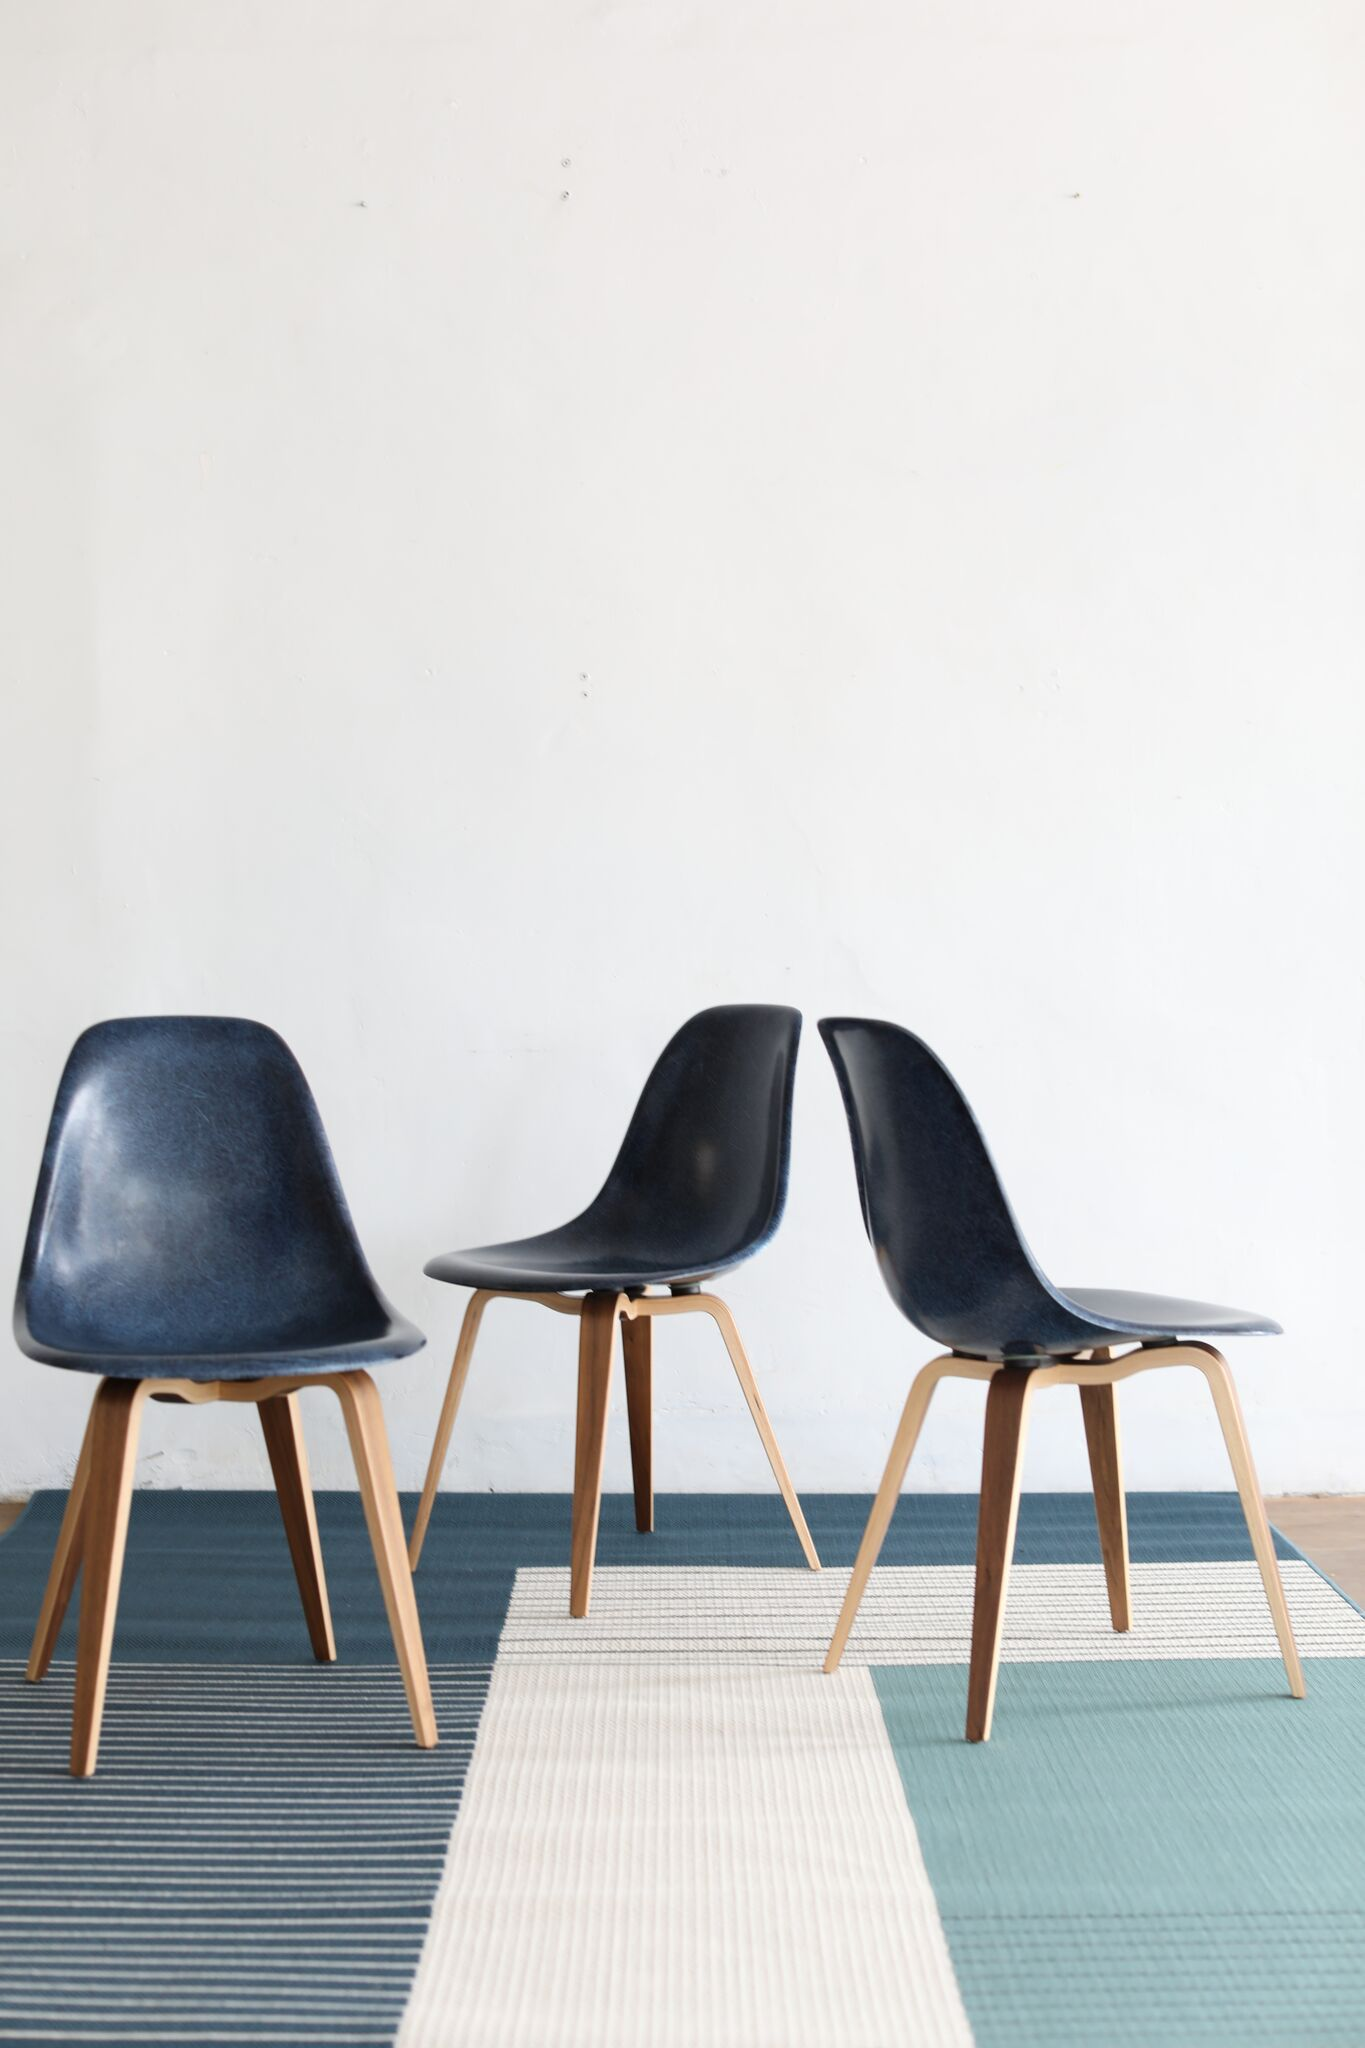 Shop Modernica For Case Study Fiberglass Chairs, Wire Chairs, Daybeds,  Couches And Other Modern Seating.